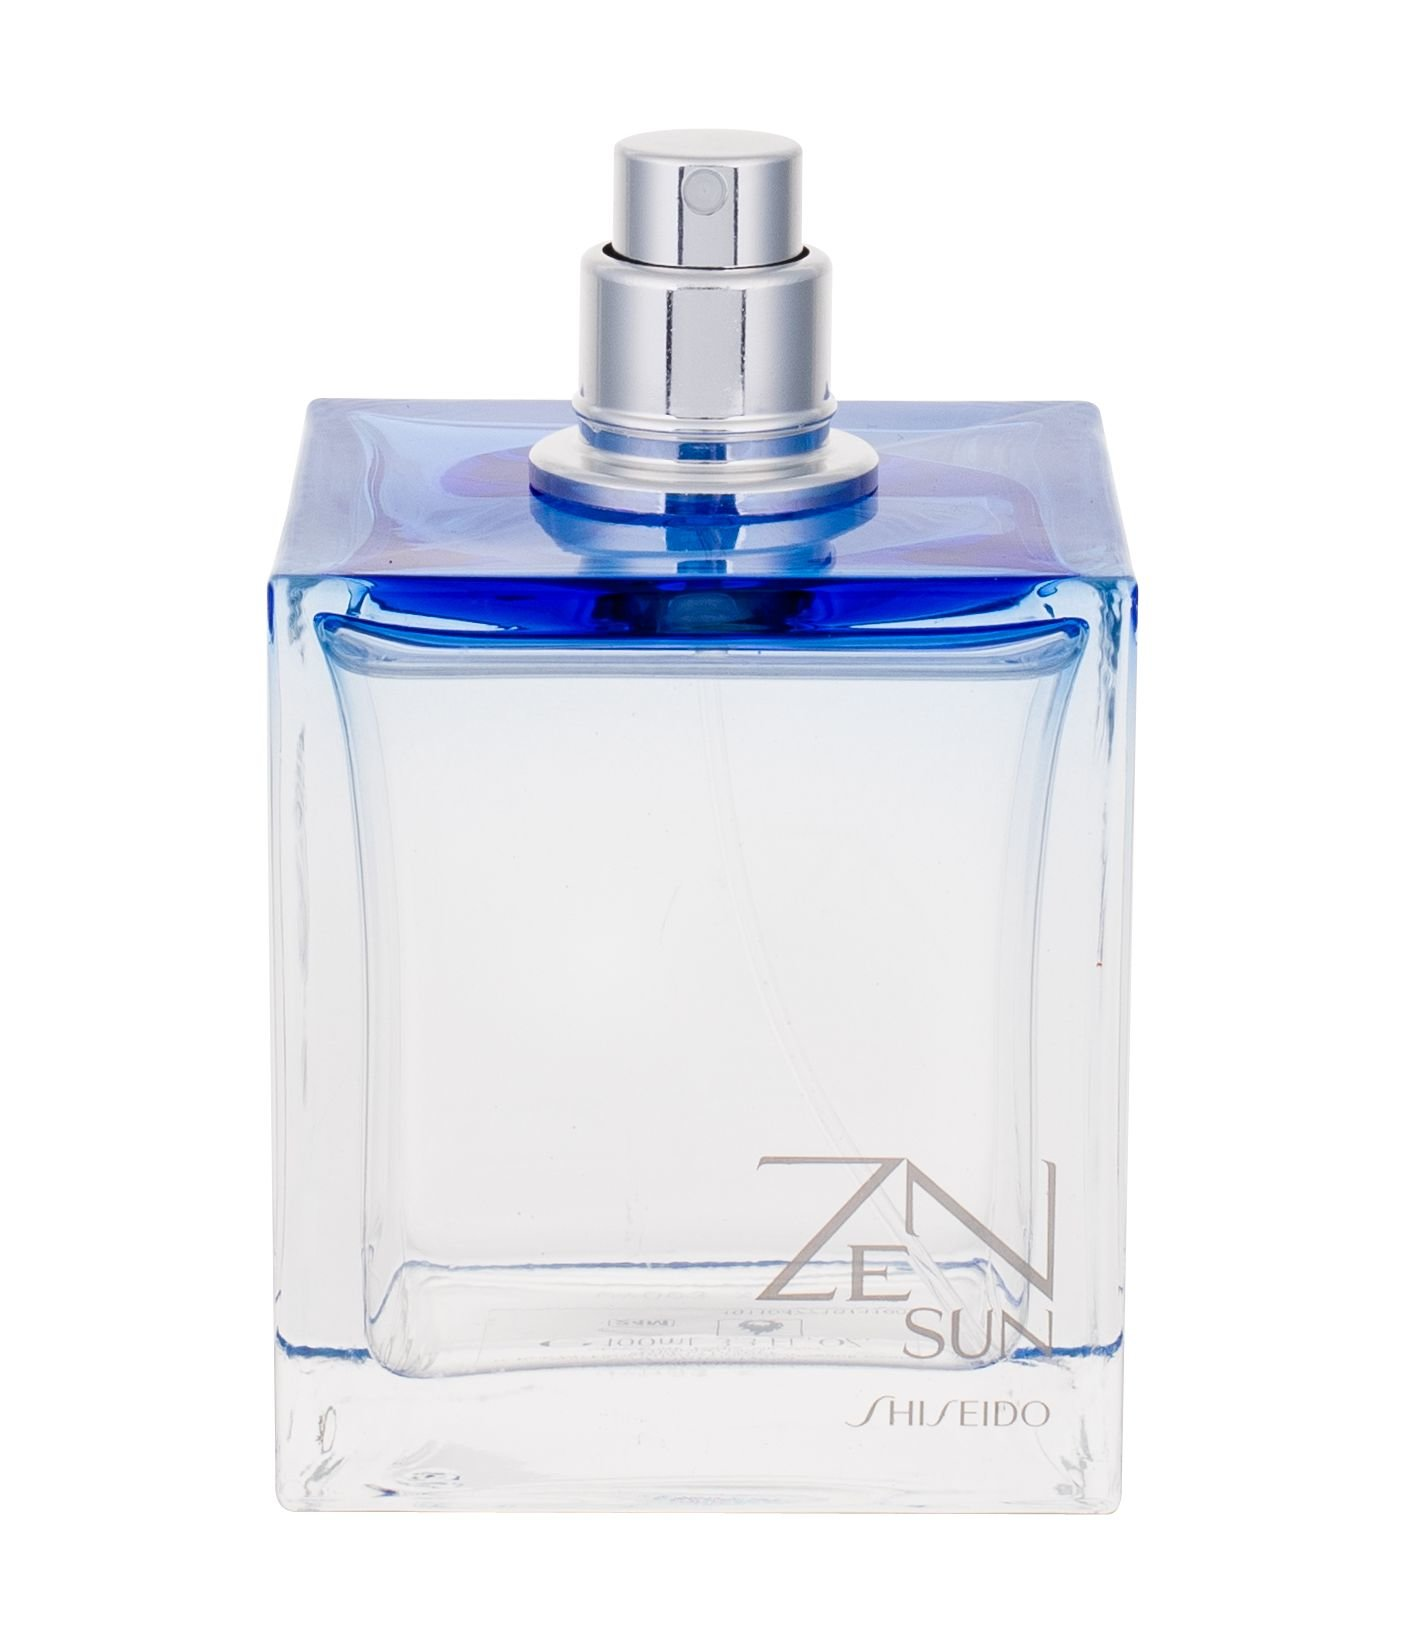 Shiseido Zen for Men Sun Eau de Fraiche 100ml